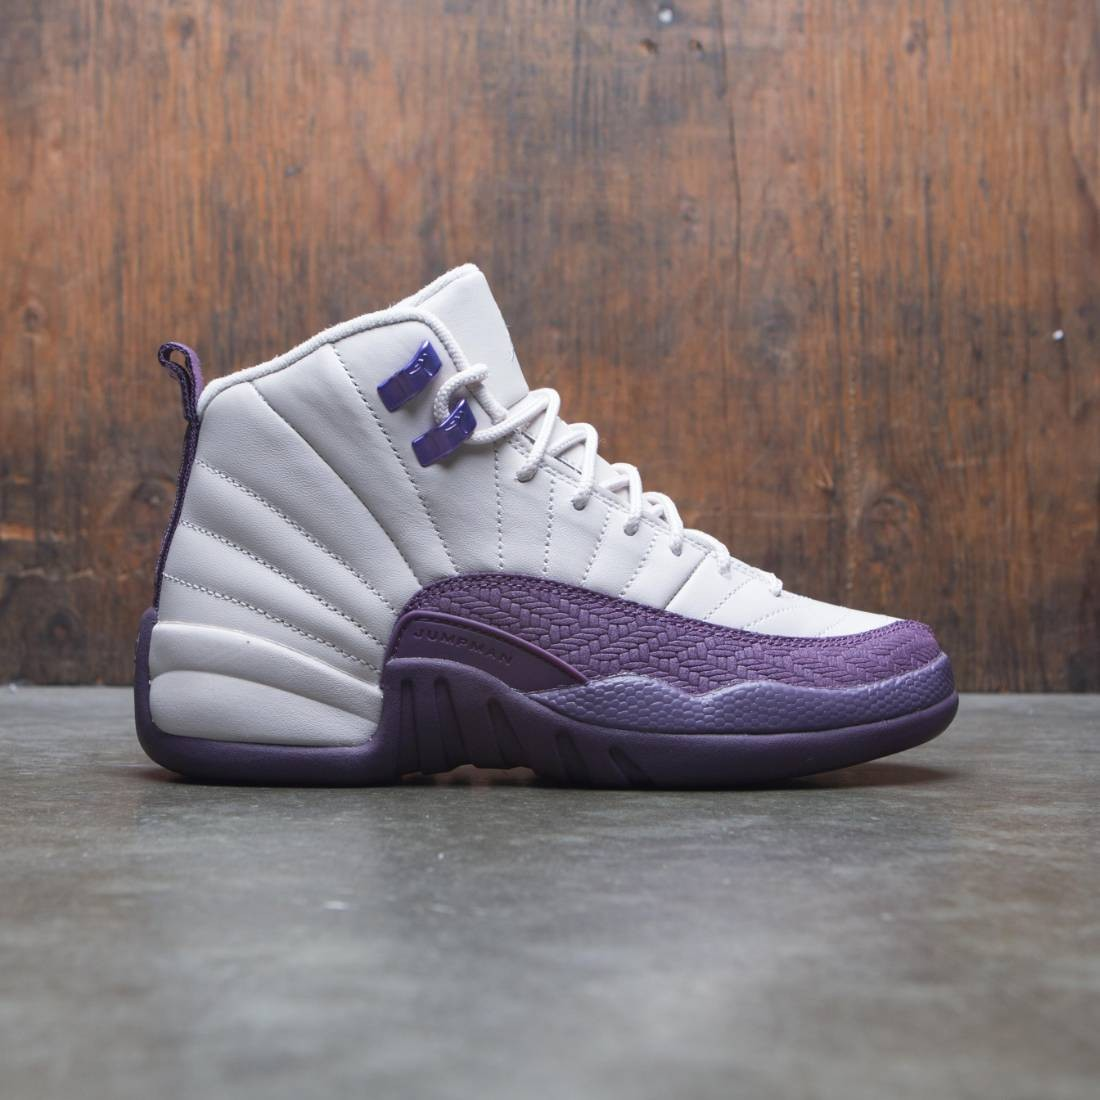 dde5d4218ecb64 jordan big kids girls  air jordan 12 retro gs desert sand desert sand pro  purple